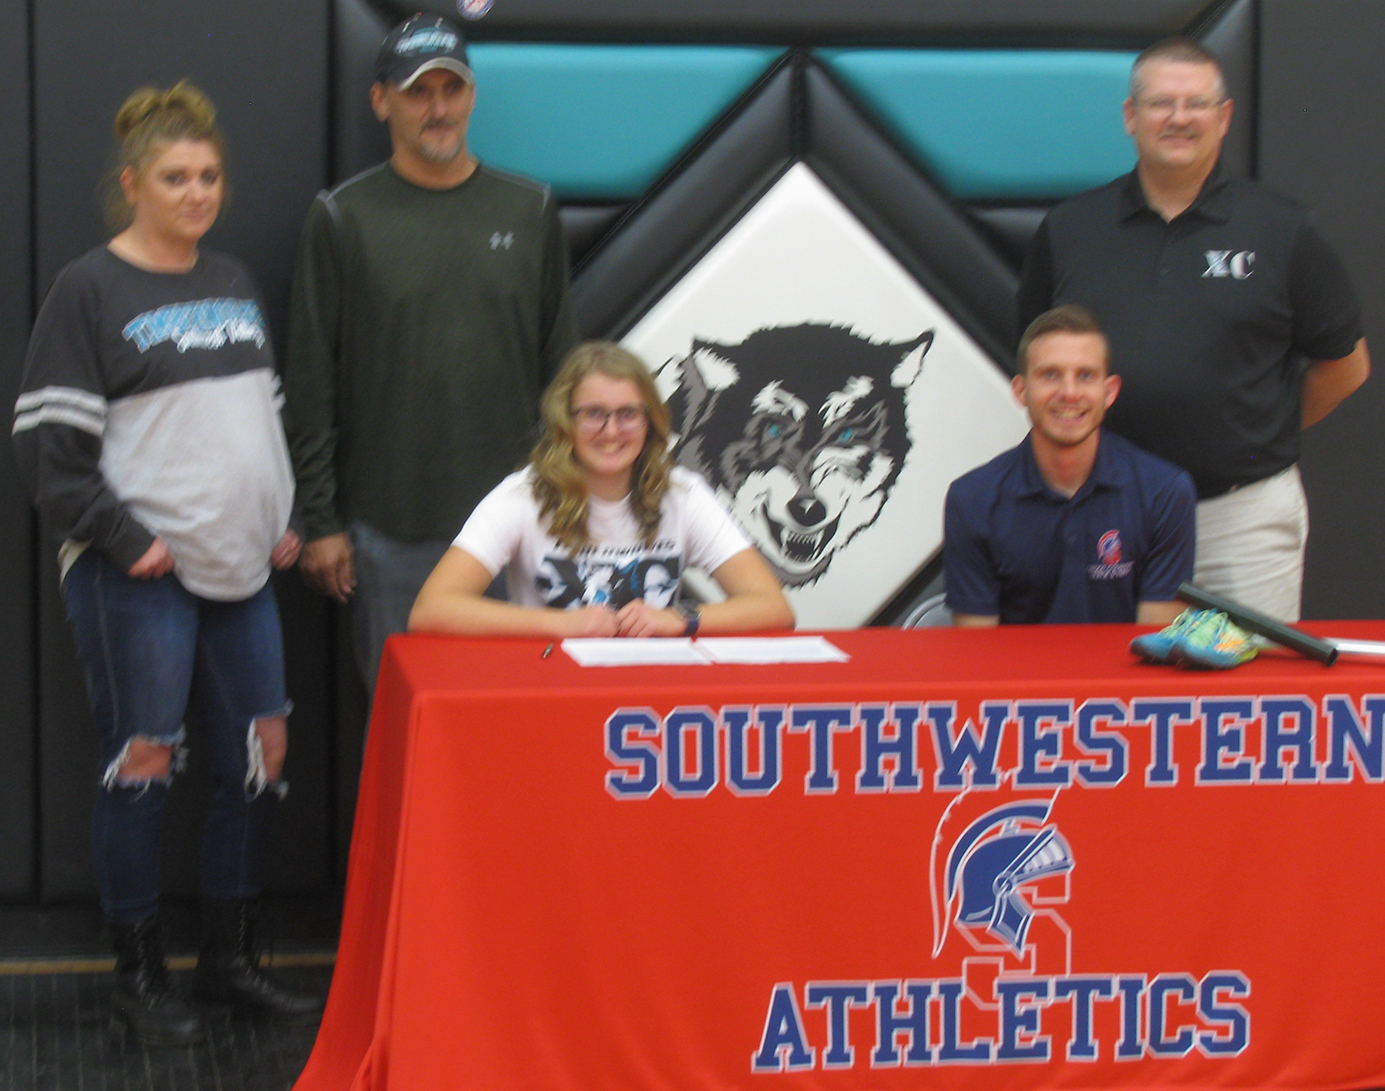 Maslyn Hummel, her family, and Southwestern Spartan Head Cross Country Coach Trey Bruton.